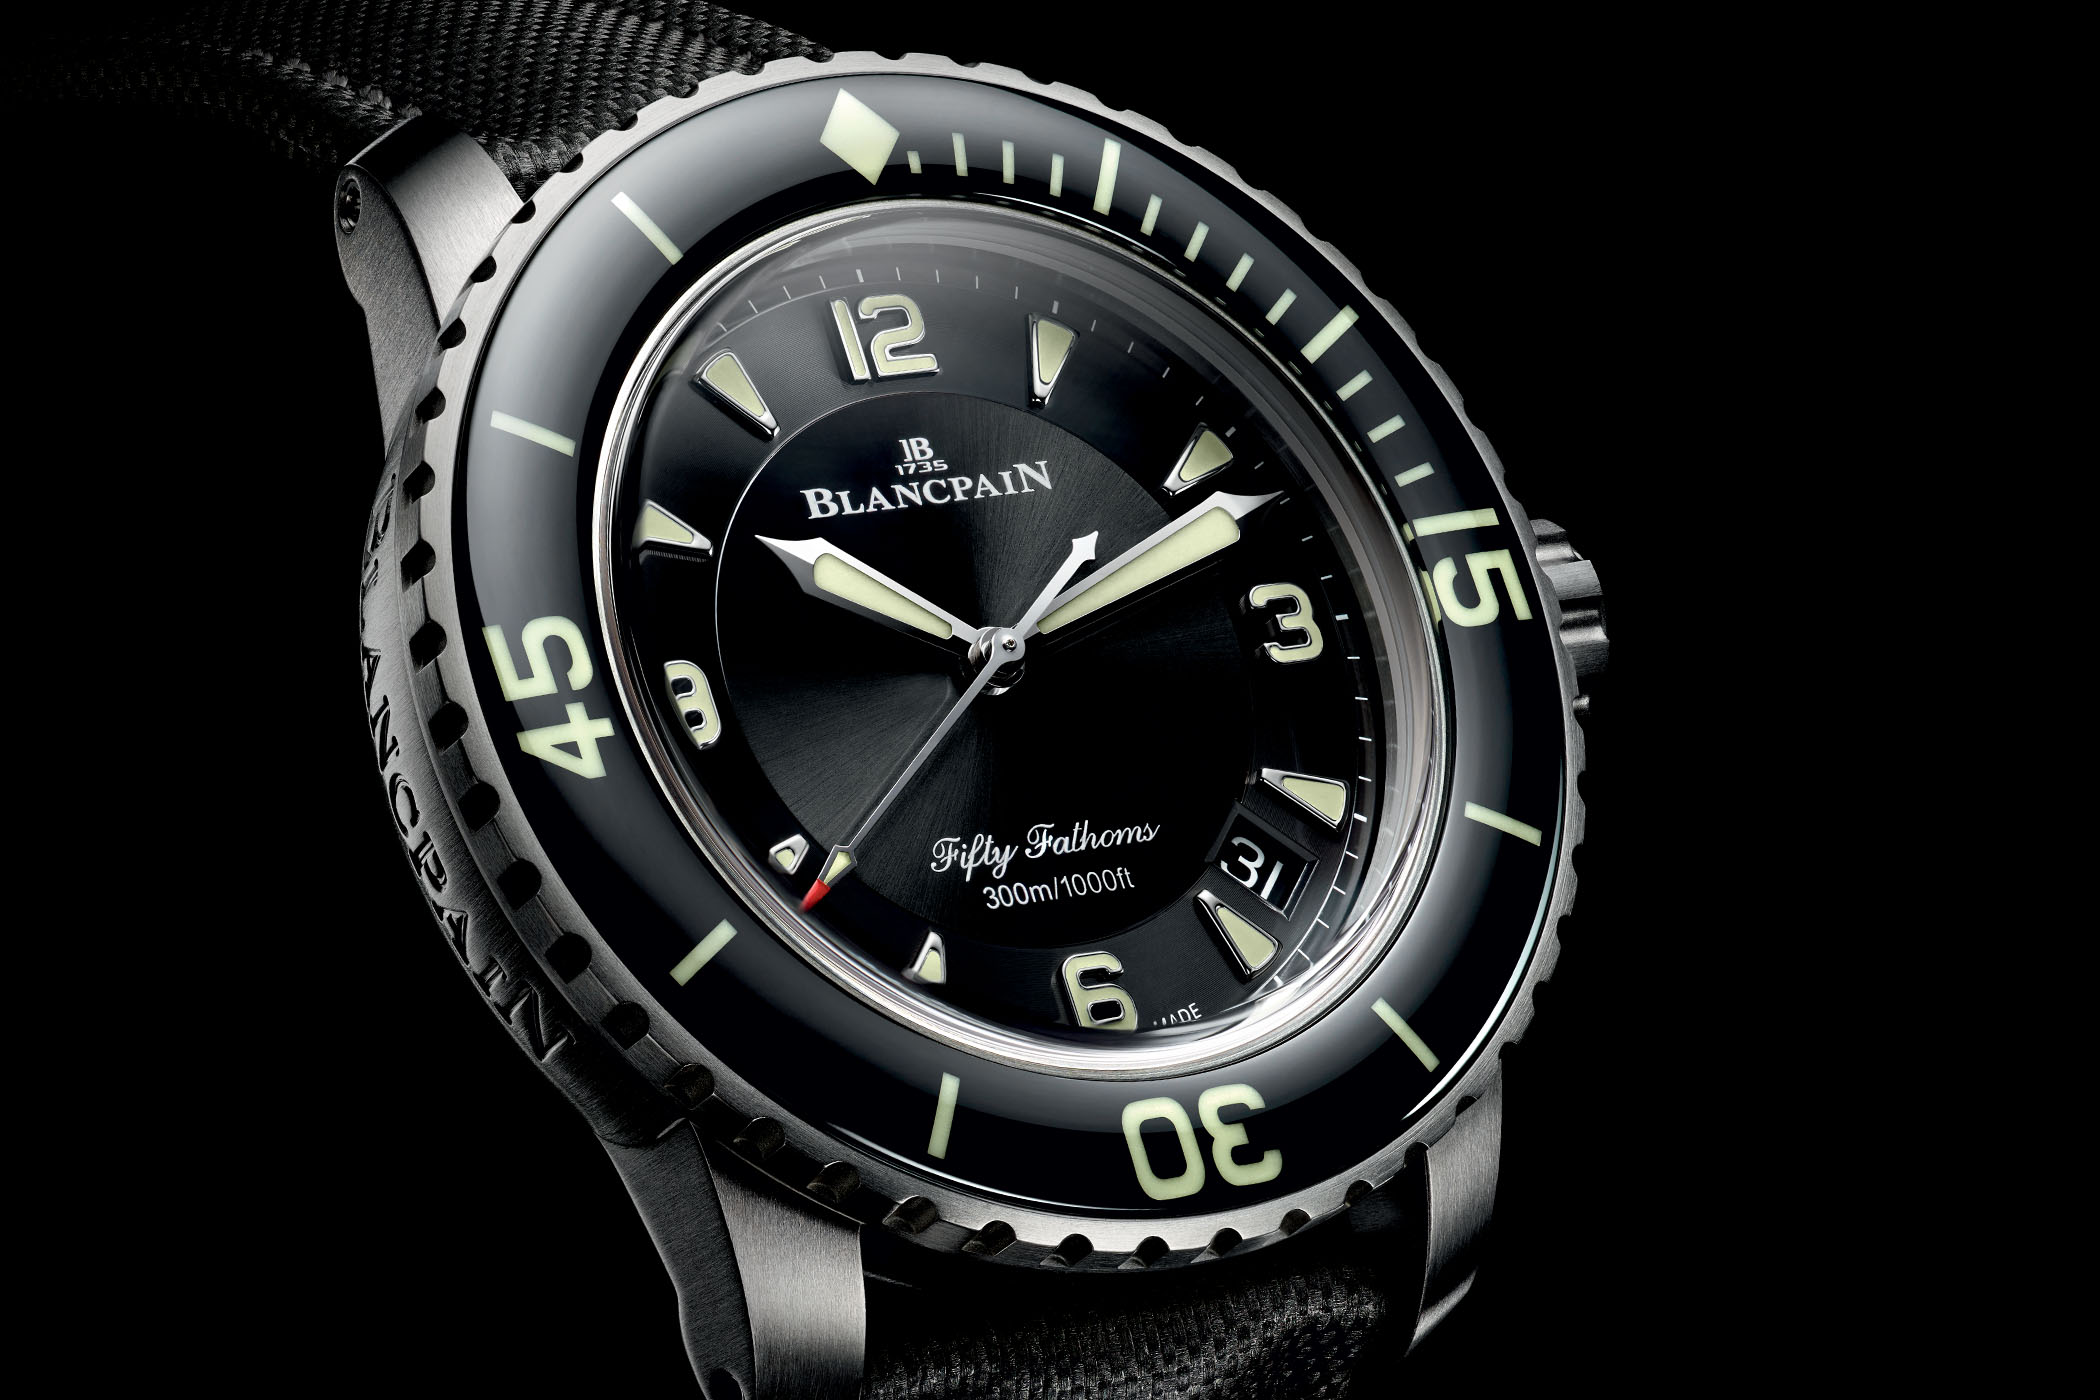 Blancpain's new Fifty Fathoms Automatique in Titanium Blancpain-Fifty-Fathoms-Automatique-5015-Titanium-5